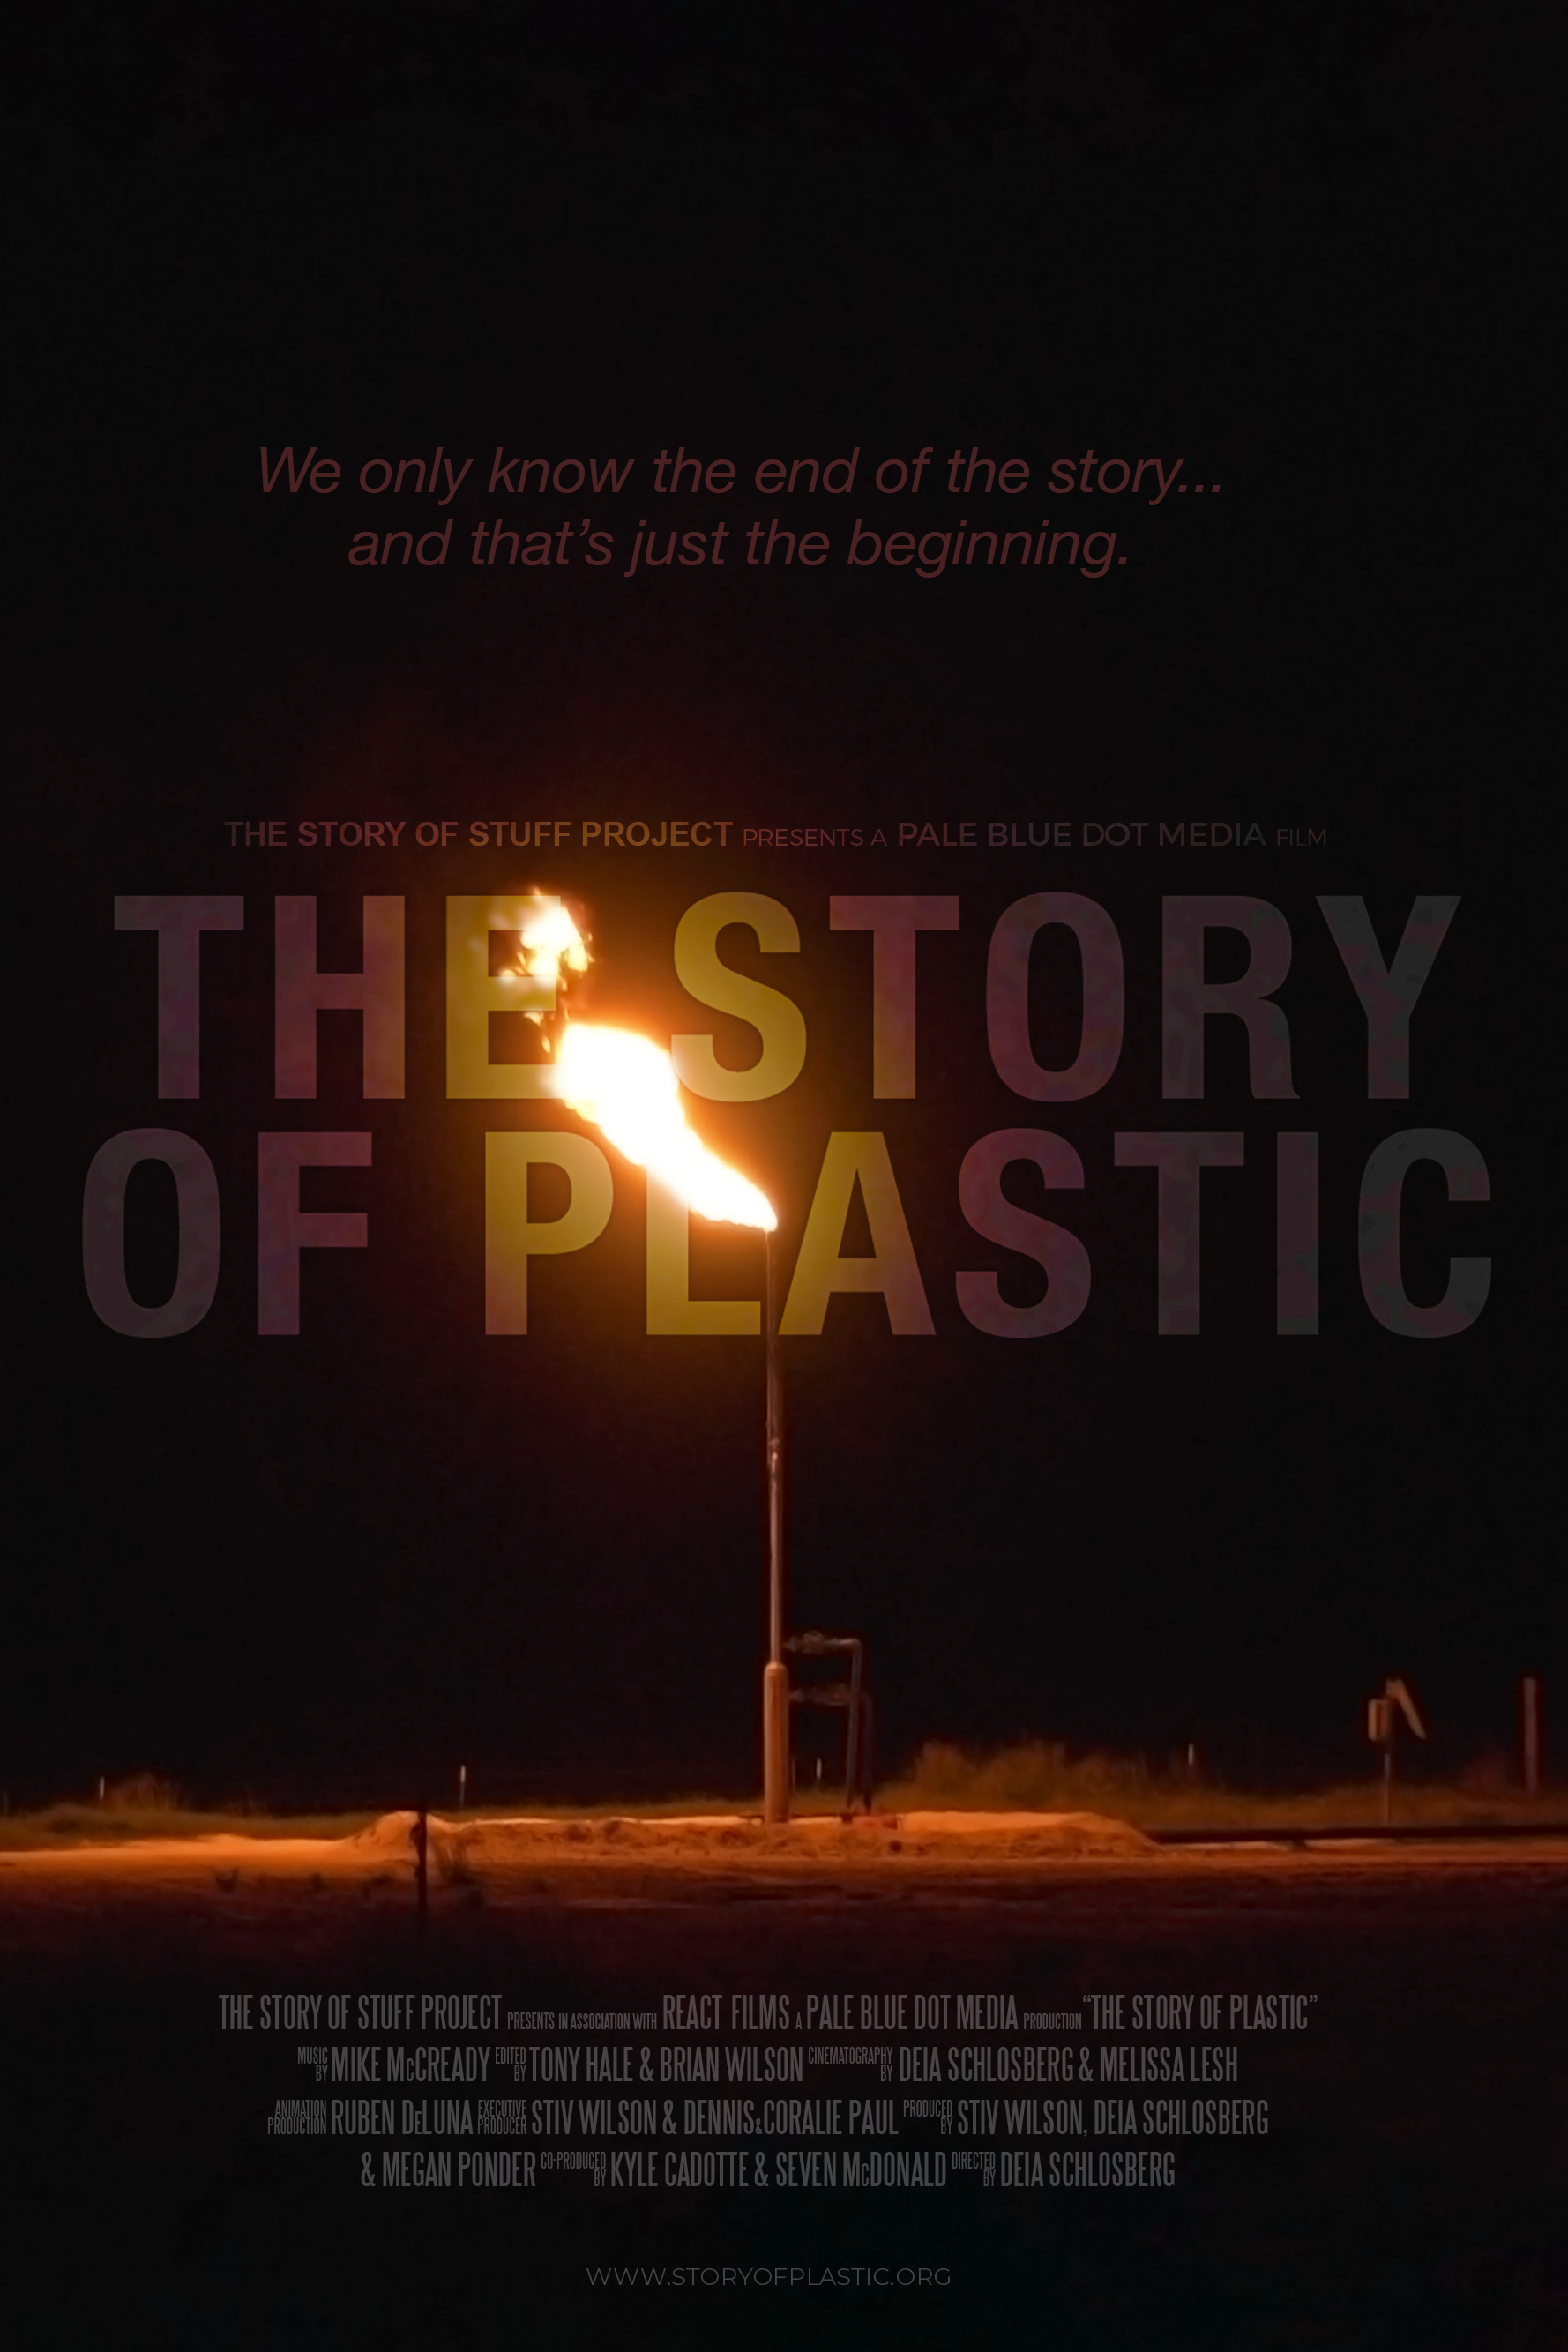 Story of Plastic Poster